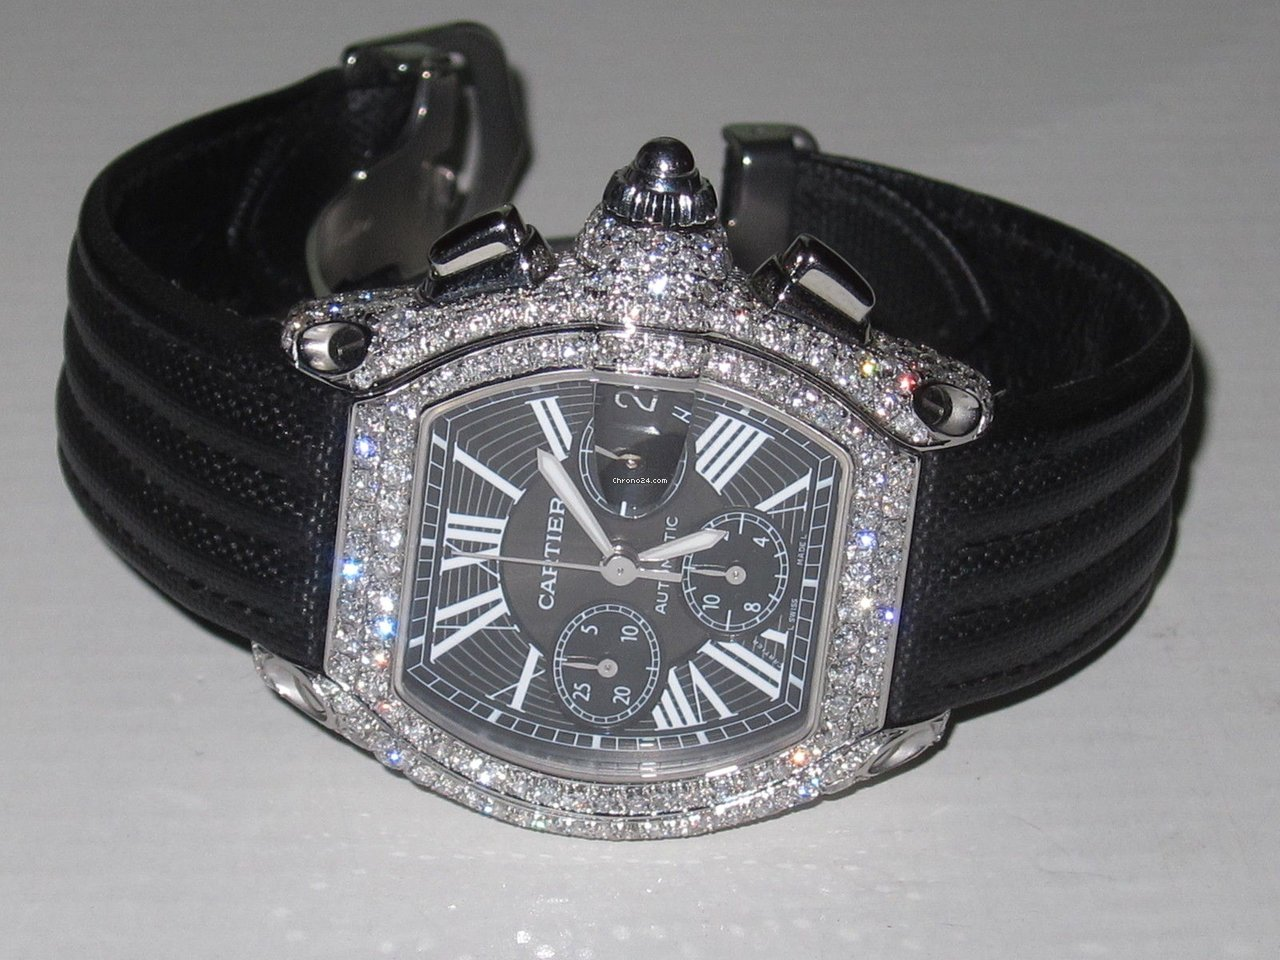 Cartier Roadster XL Chronograph Diamonds for  9 999 for sale from a     Cartier Roadster XL Chronograph Diamonds for  9 999 for sale from a Trusted  Seller on Chrono24